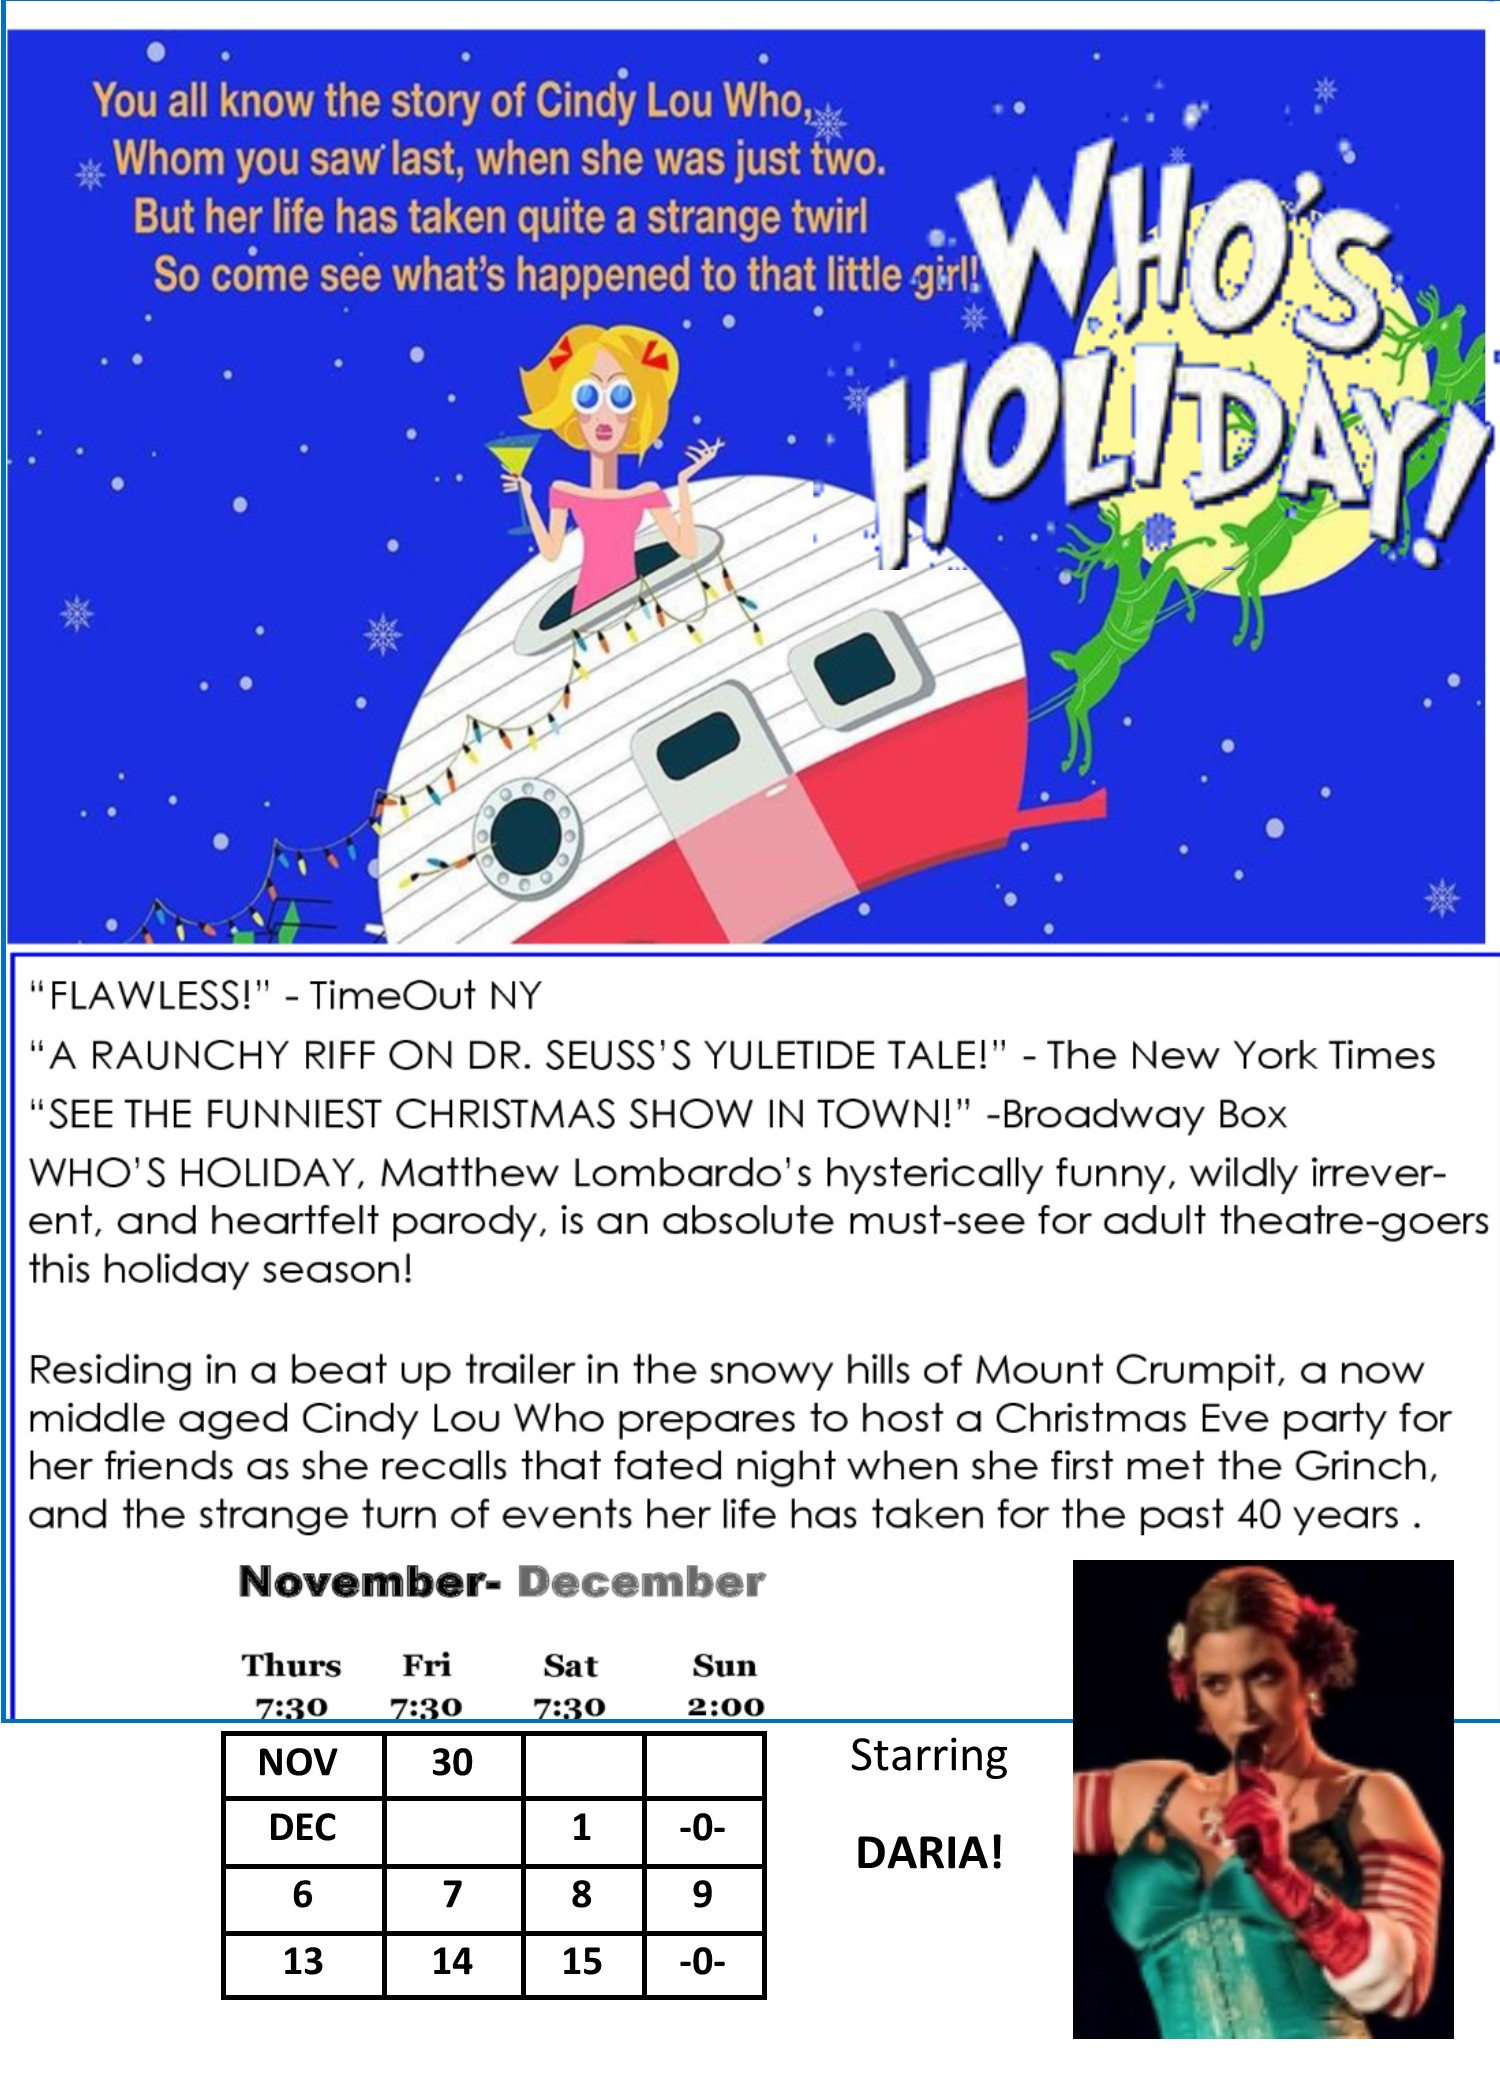 POSTCARDS 5 x 7Who's Holiday back NEW with correct dates.jpg